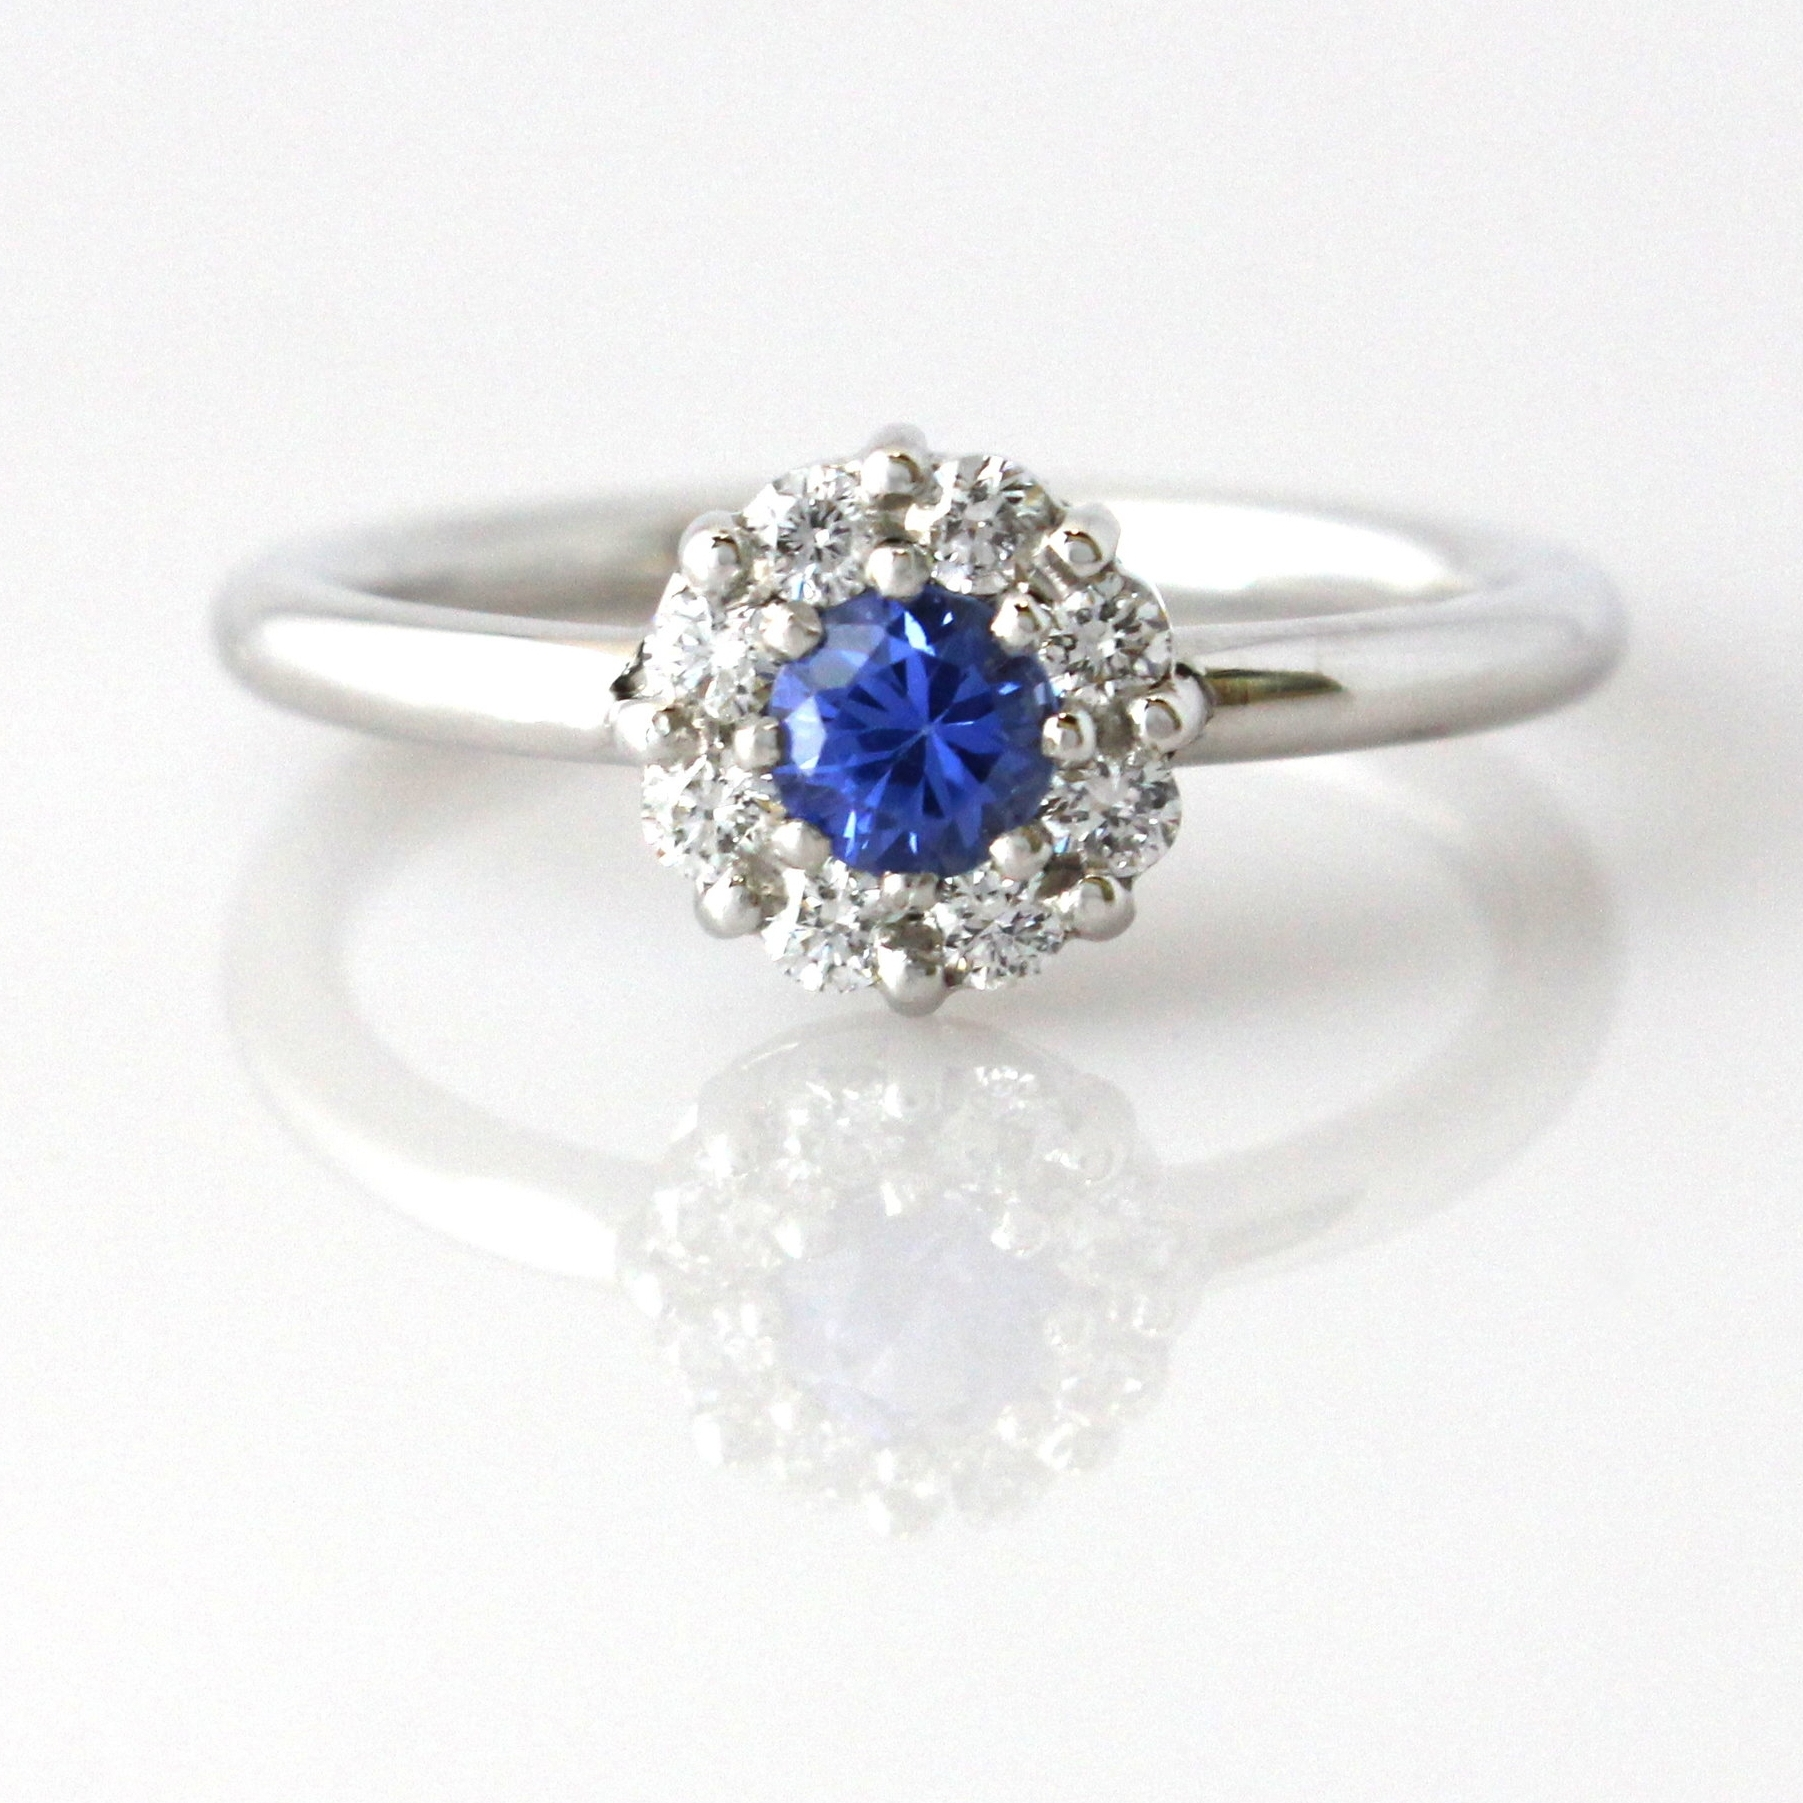 Ceylon sapphire with diamond cluster set in white gold ring.